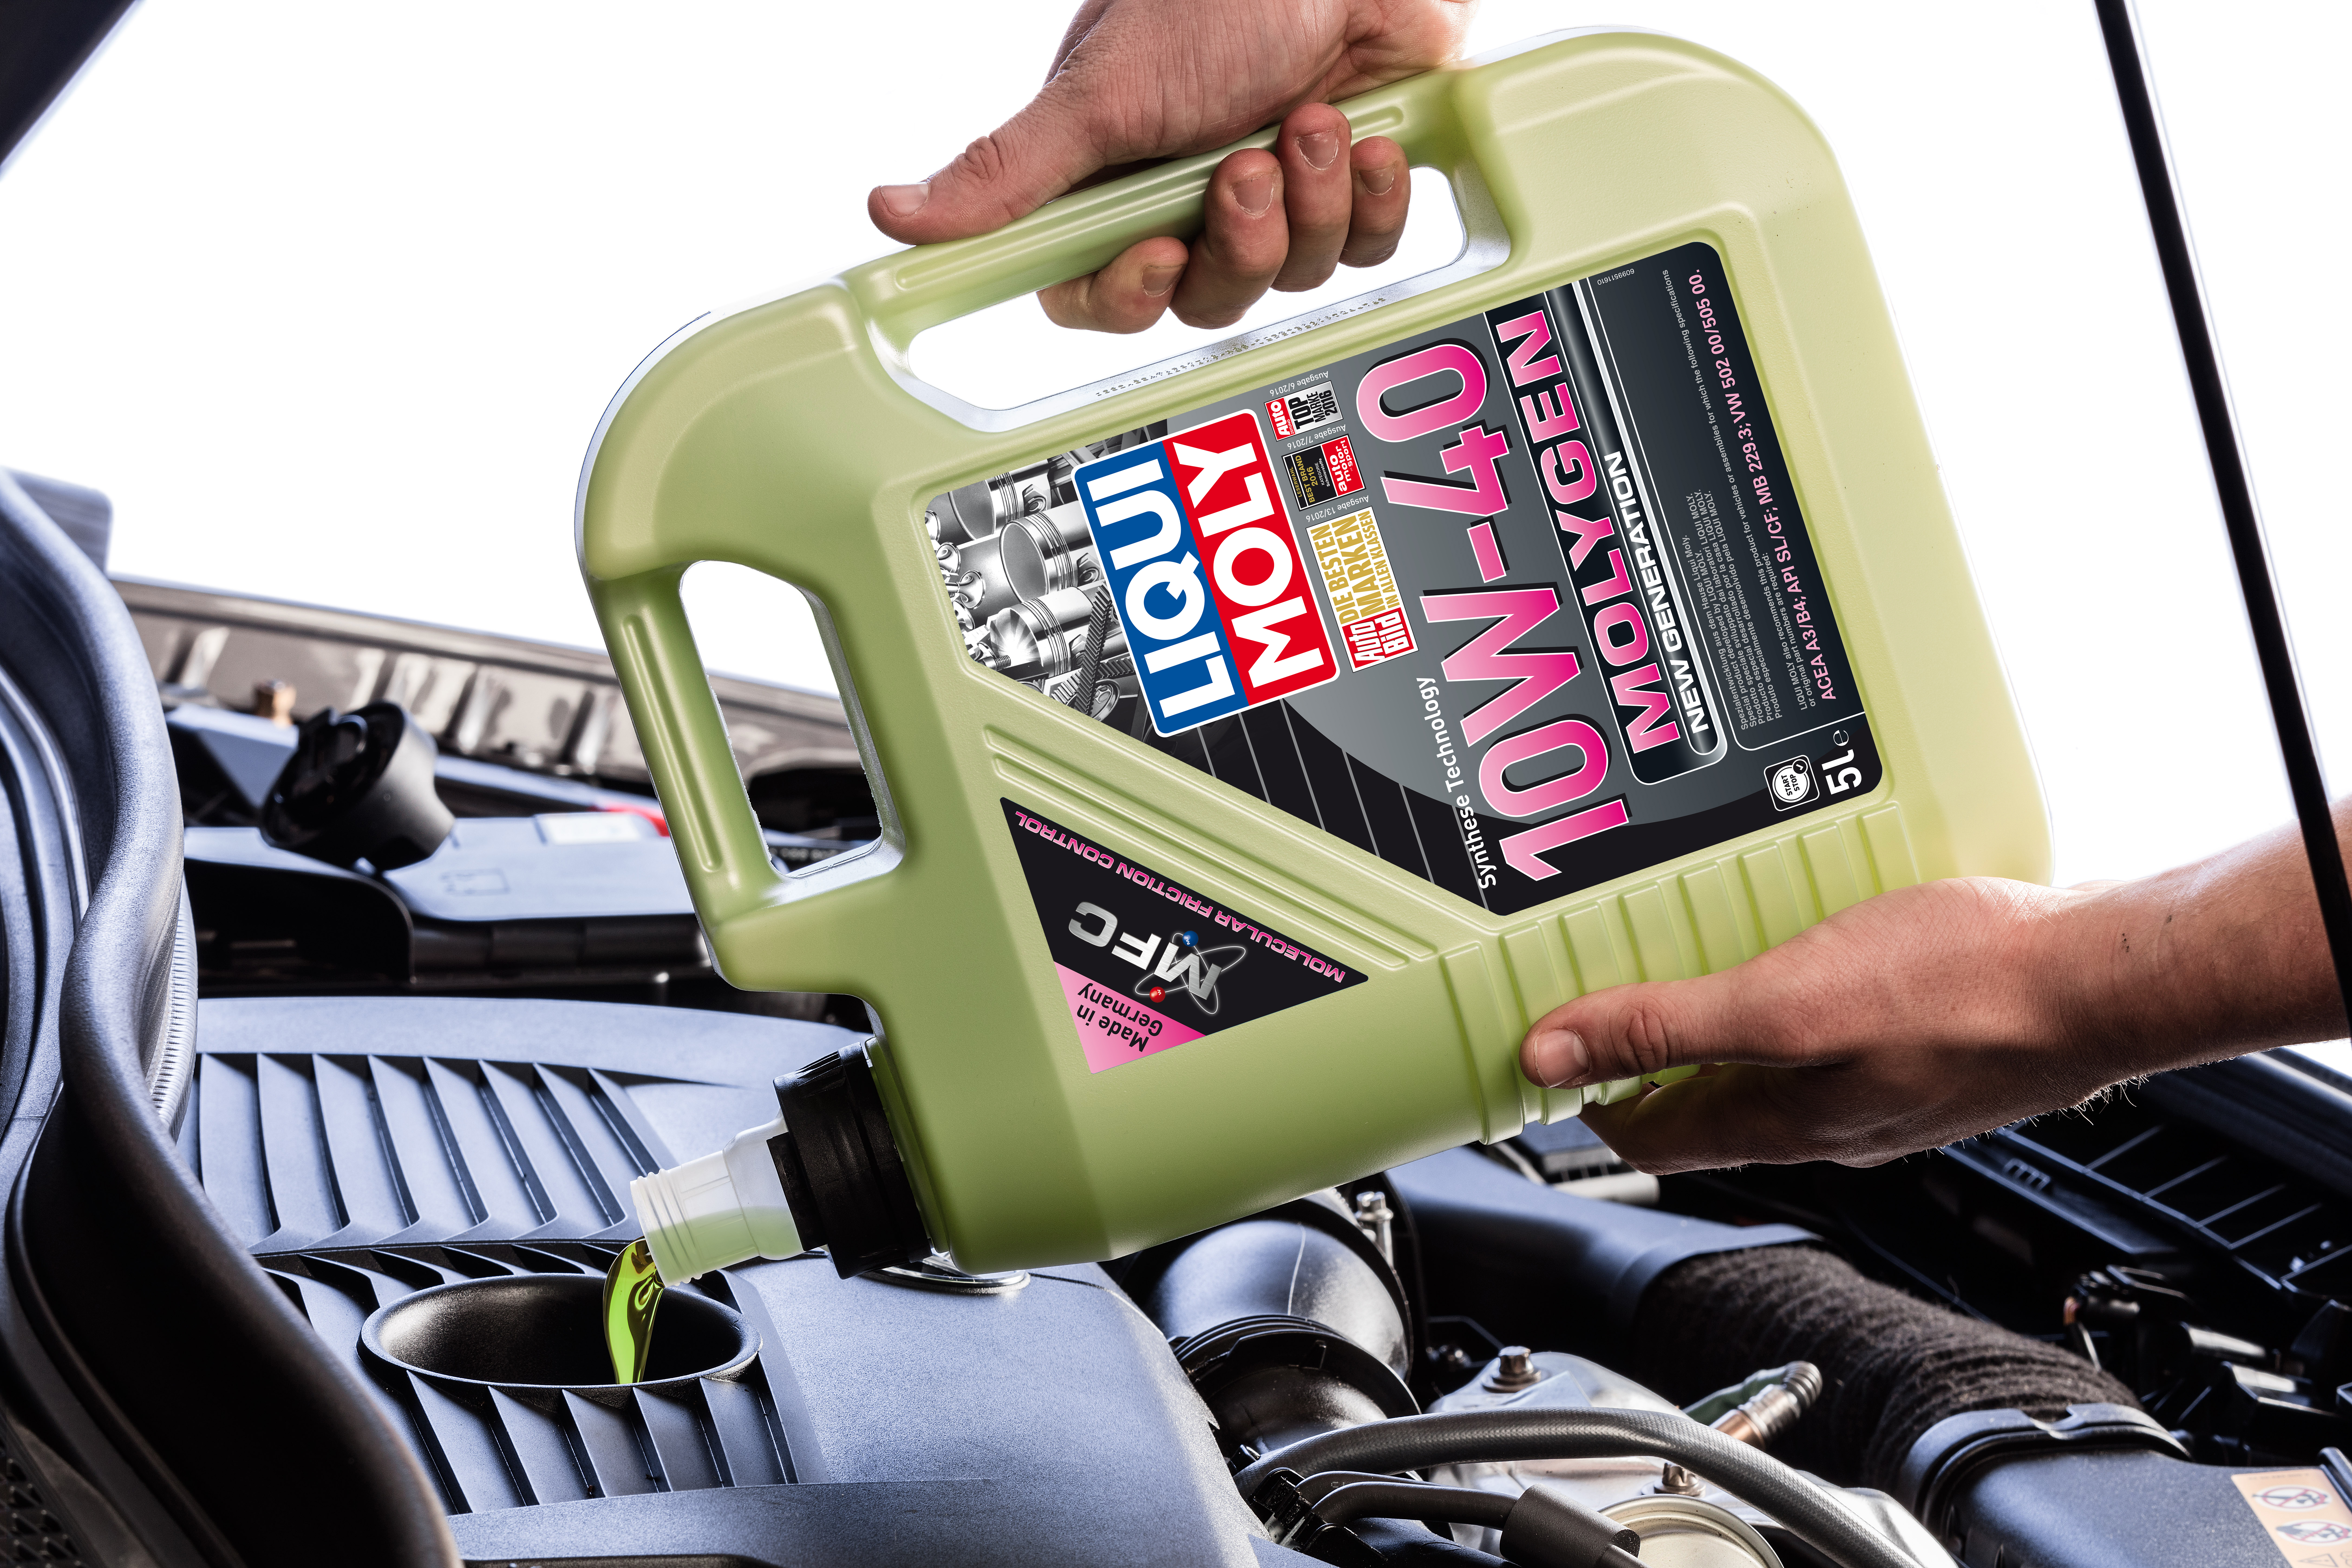 Glowing green motor oil by LIQUI MOLY: LIQUI MOLY